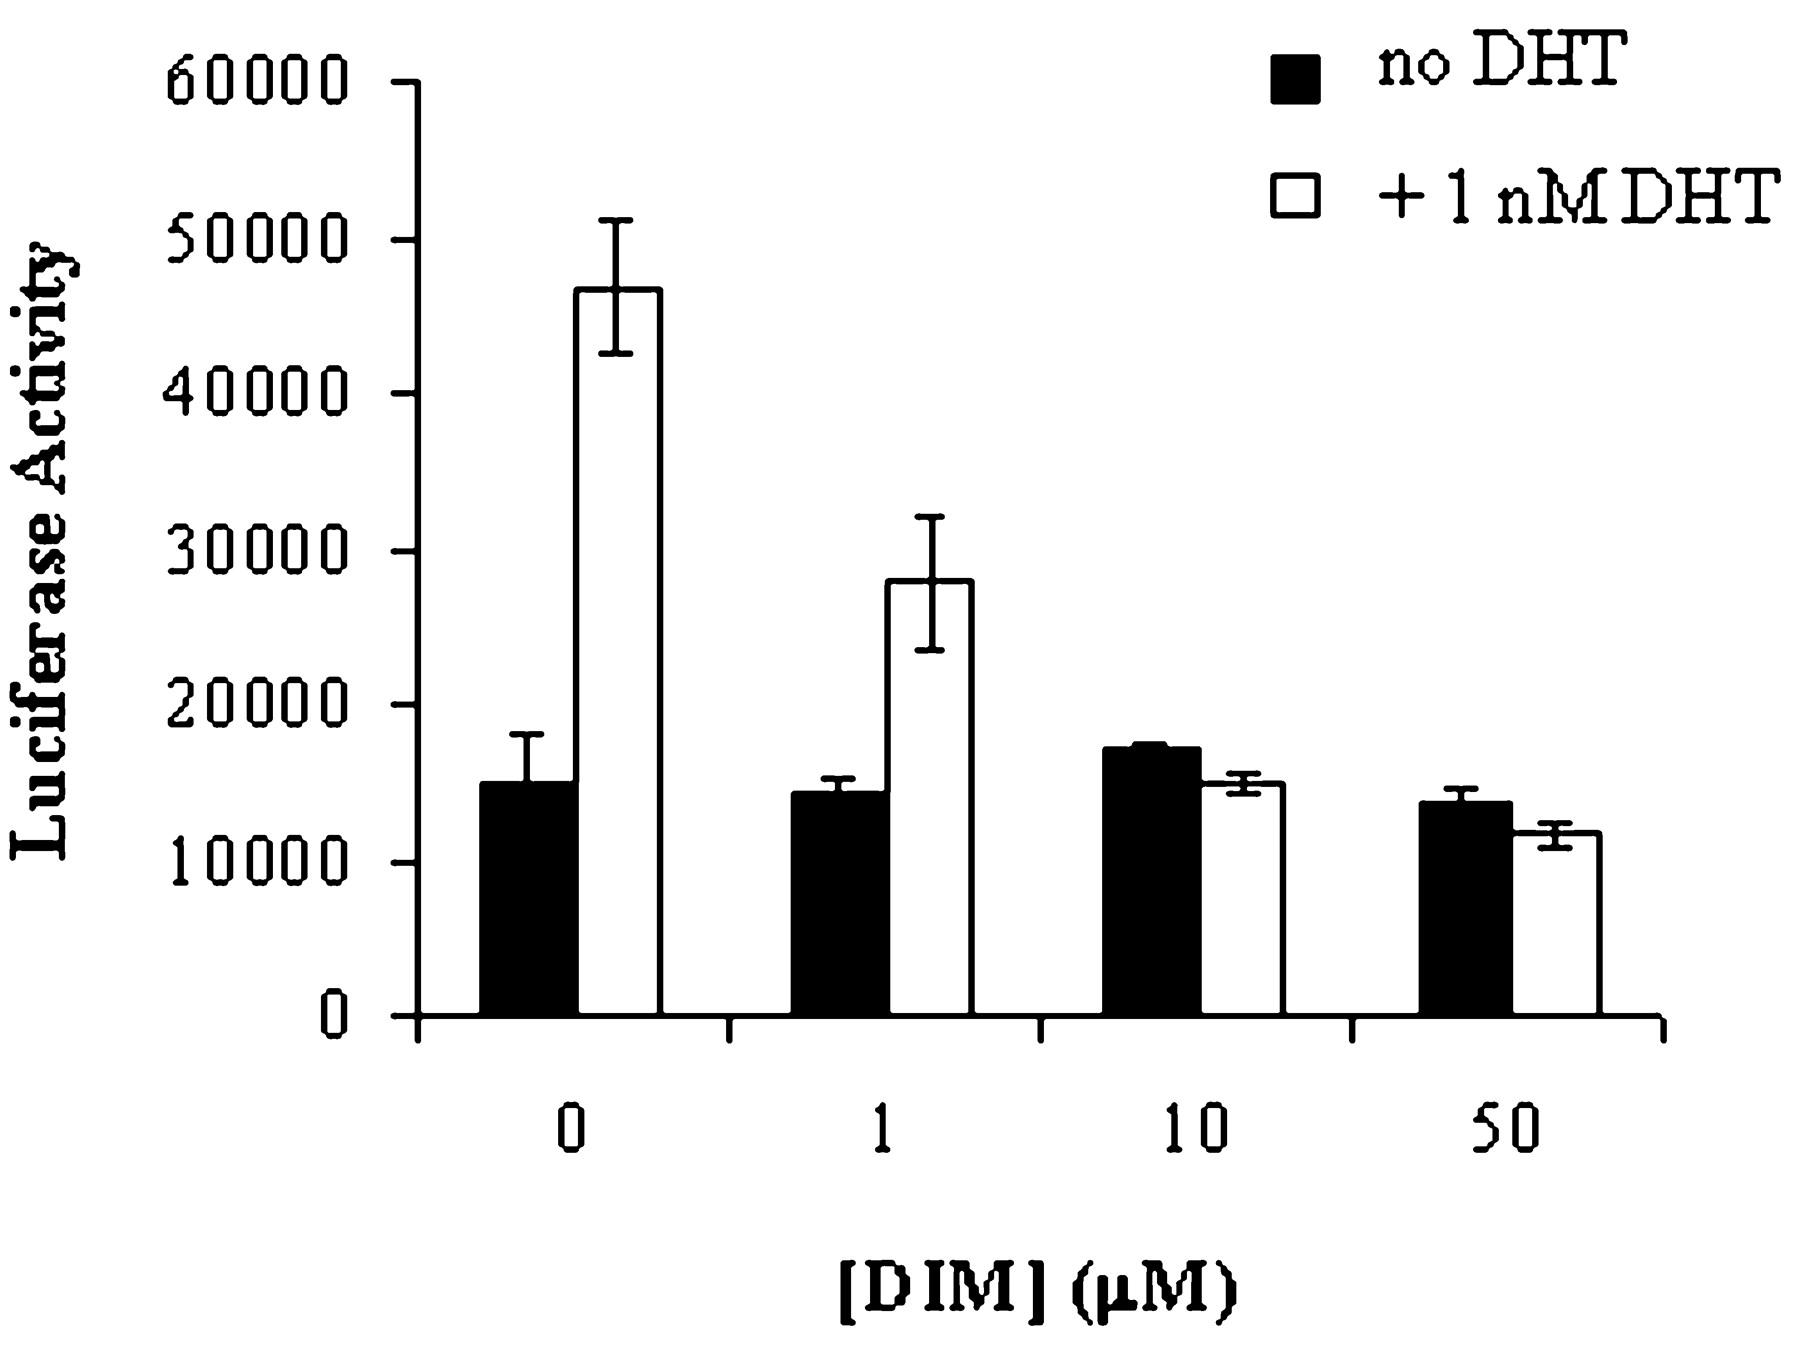 Luciferase analysis reveals DIM down-regulates DHT activity on a dose-dependent basis.